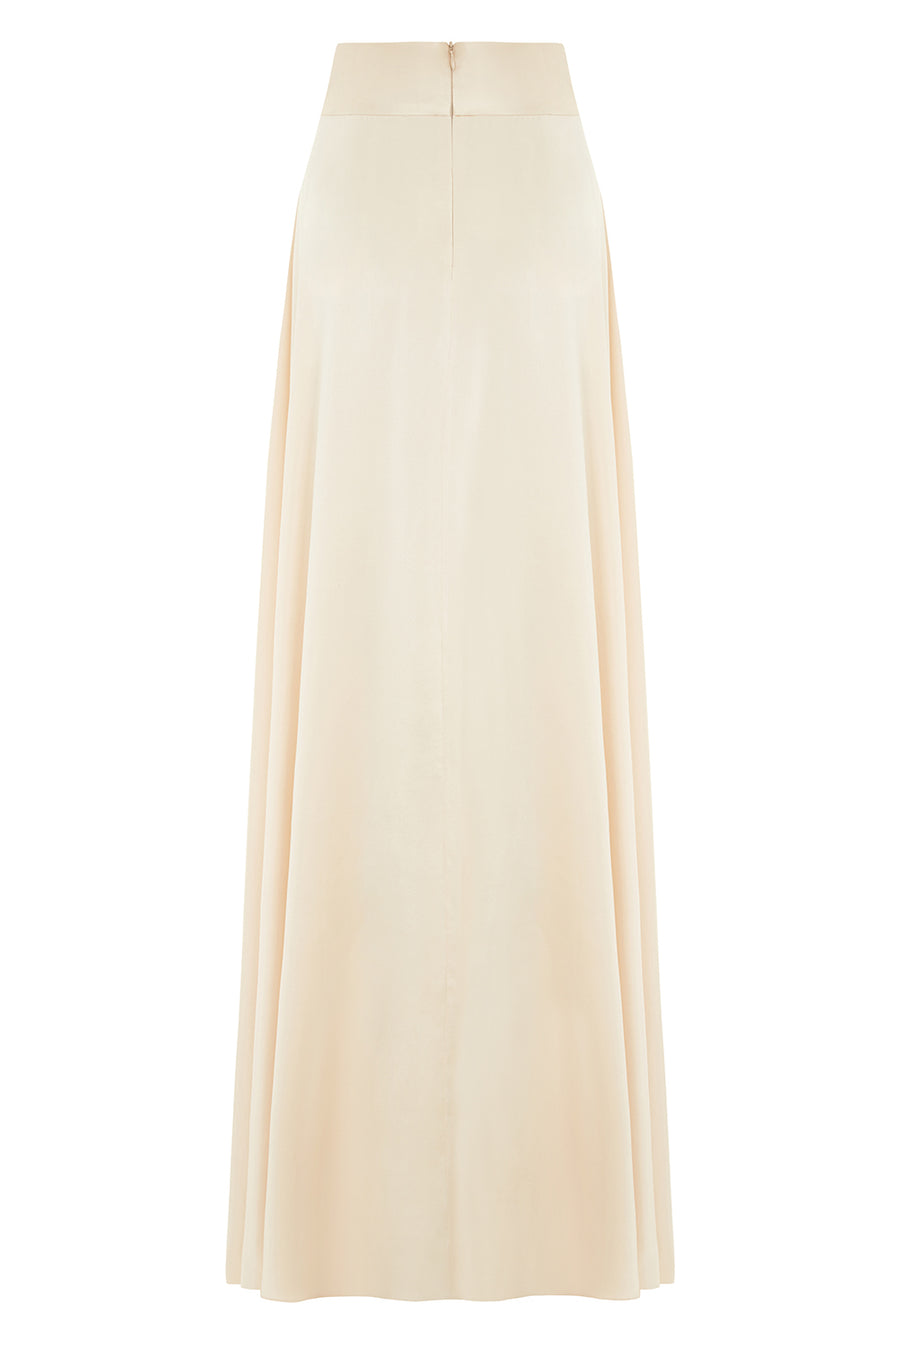 The Maxi Twirl | Champagne